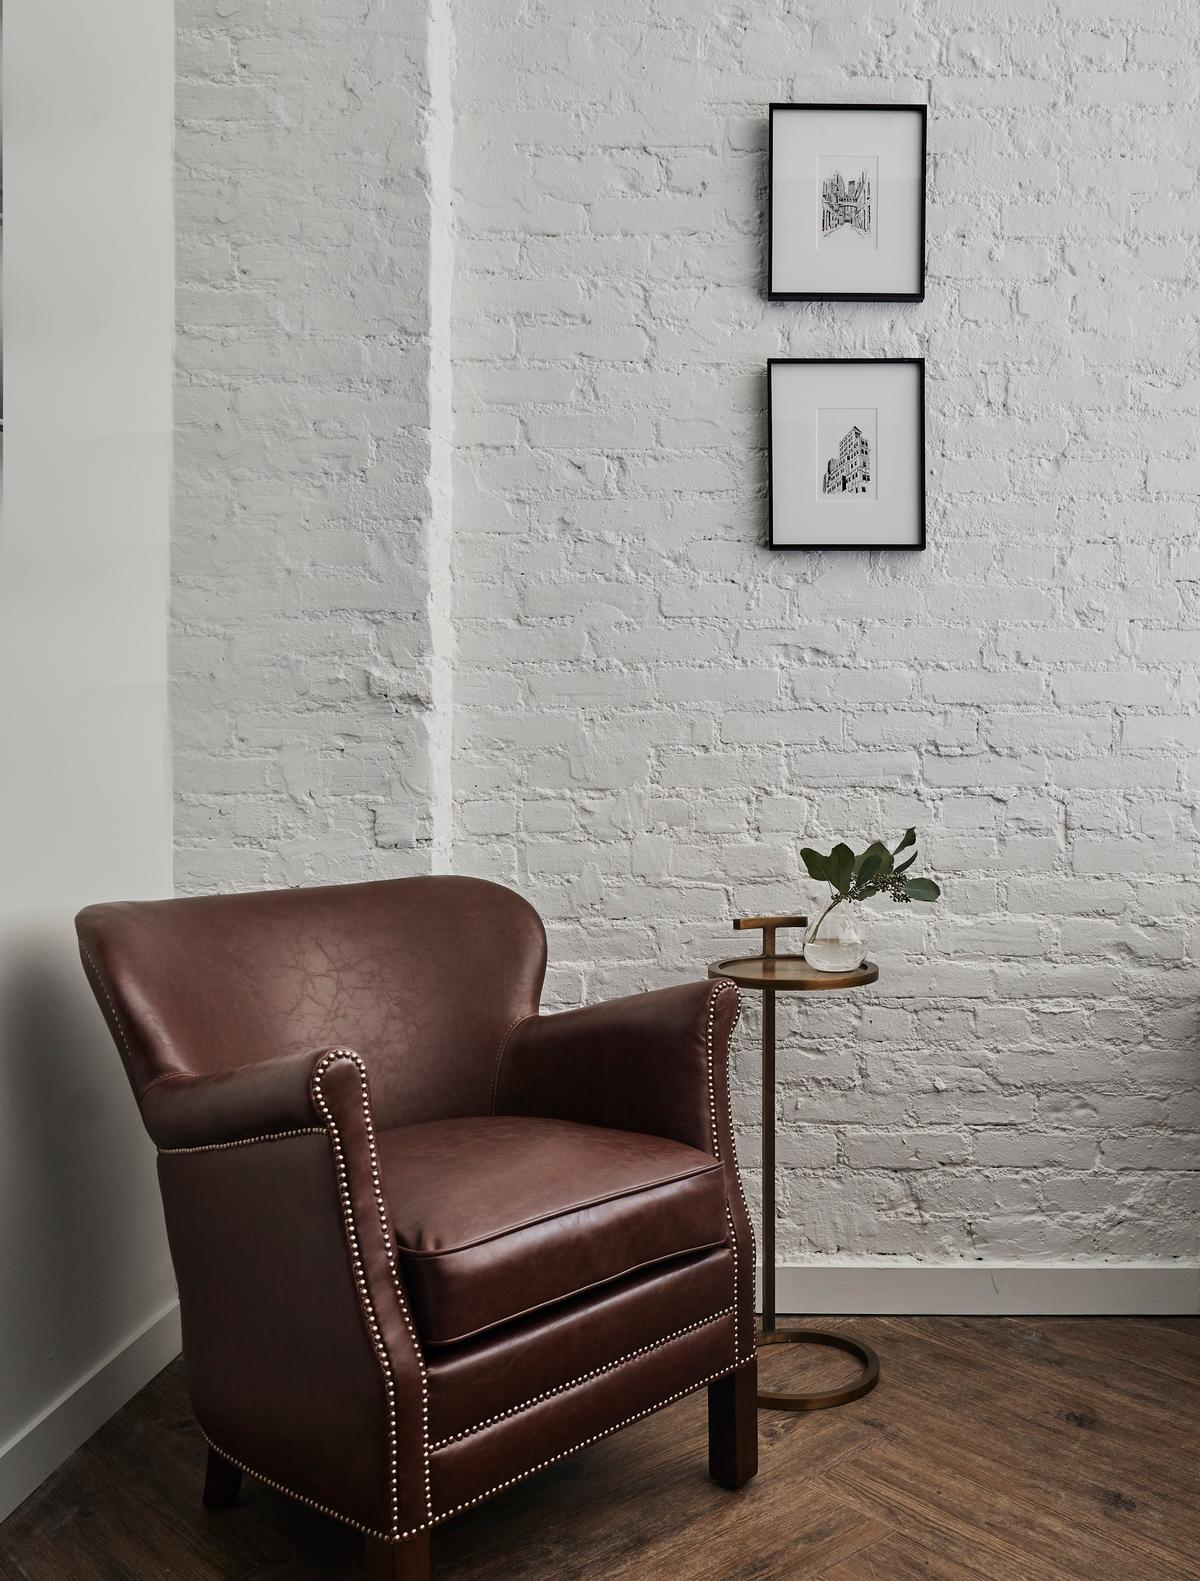 There are tobacco leather professor chairs in each of the rooms / Adrian Gaut